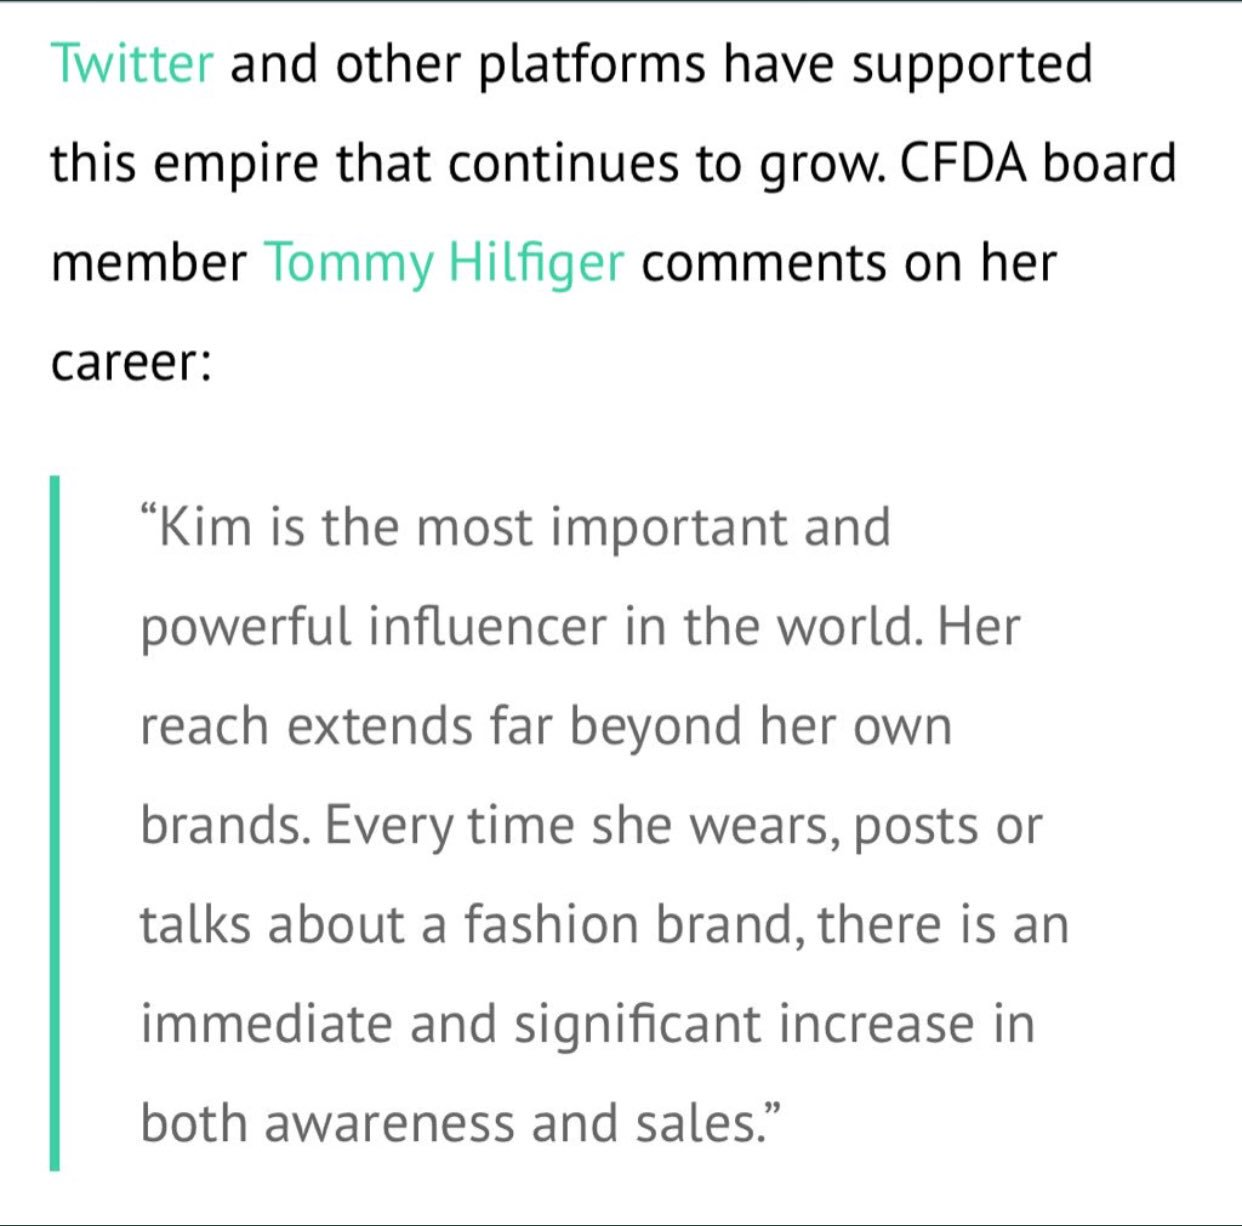 I love you @TommyHilfiger Thank you for your kind words ❤️ https://t.co/FubZ9i7eEZ